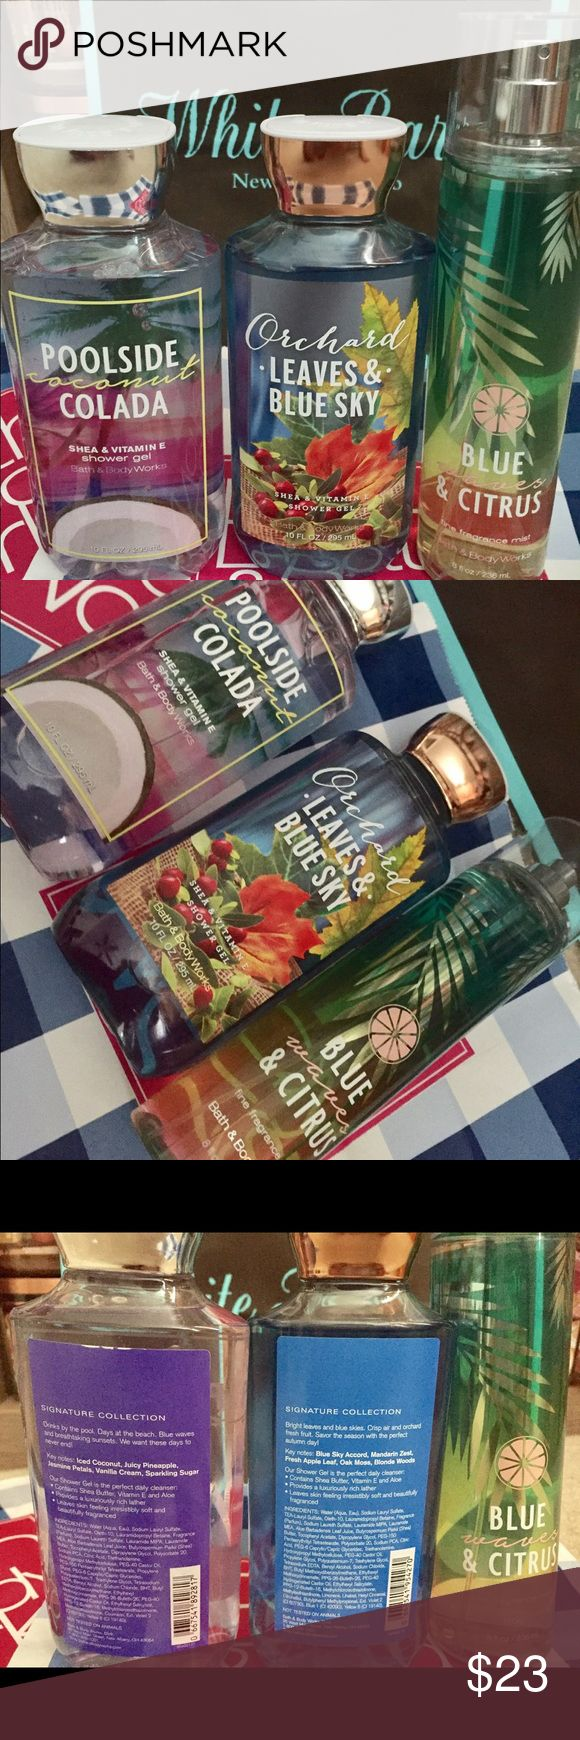 Bath and Body Works Shower Gel New and unused :) feel free to ask questions or pictures! :) cheaper in ♏️ if interested. * FFM Blue waves & Citrus *, * Shower Gels are Poolside coconut colada and Orchard leaves & sky * Bath and Body Works Other